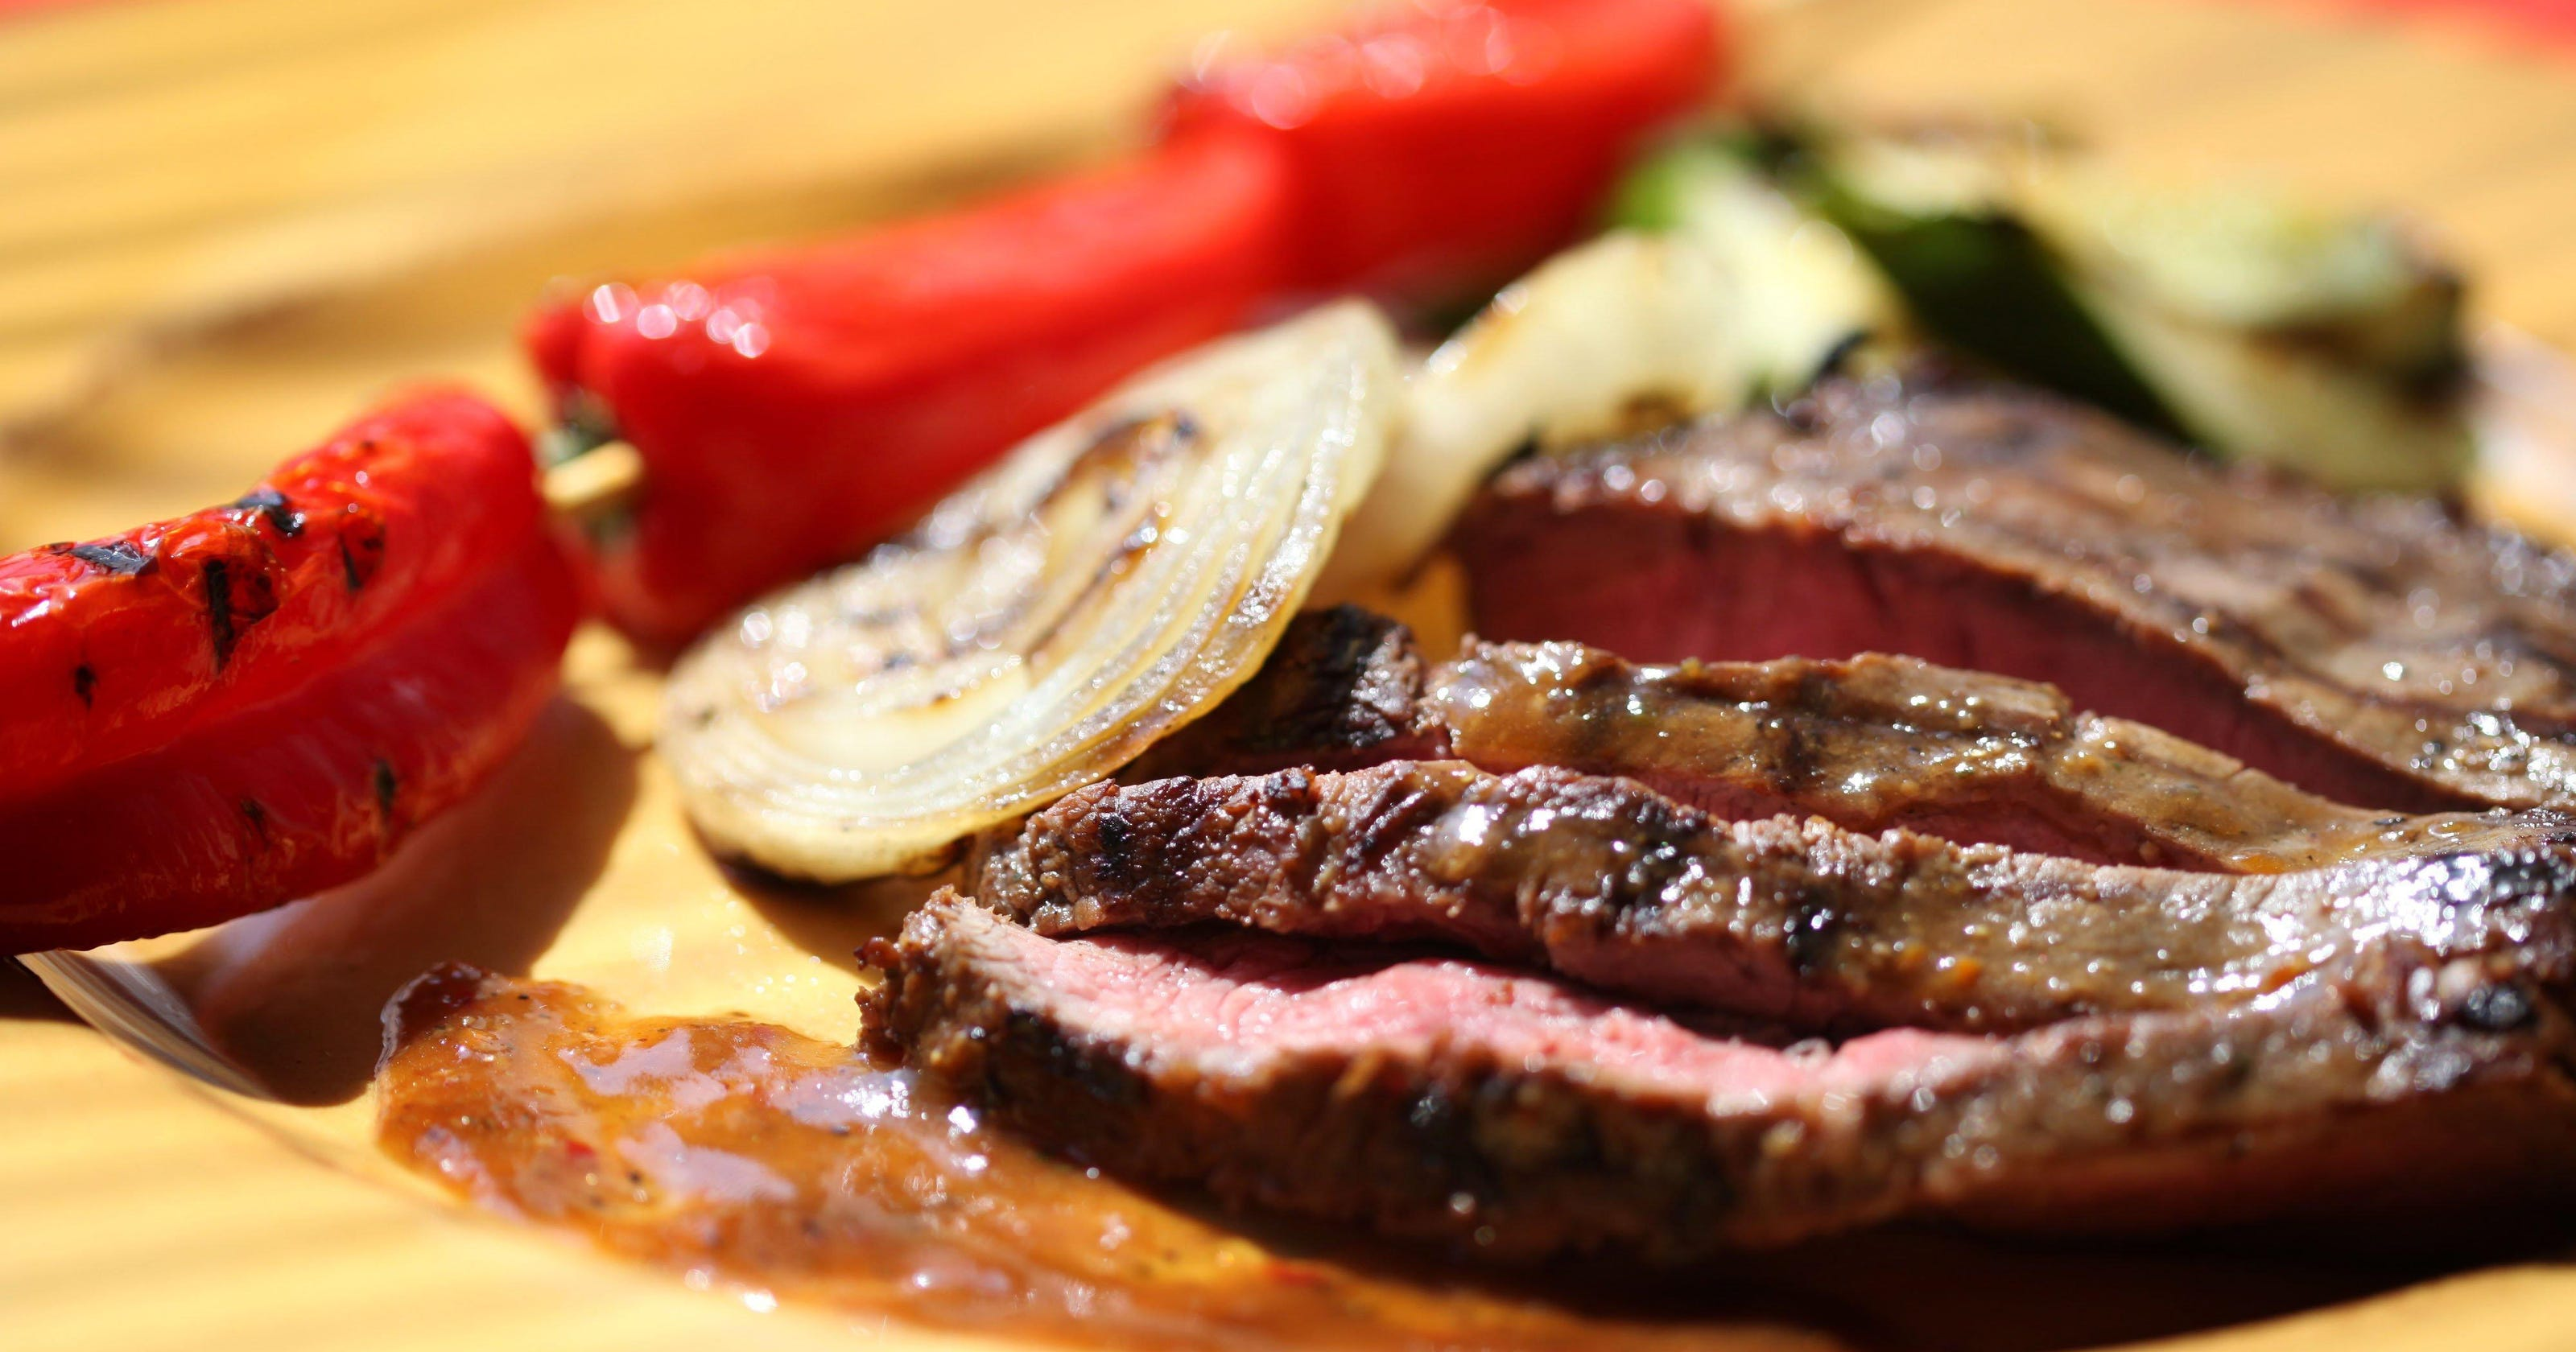 Sell-by date has no effect on meat once it's thawed